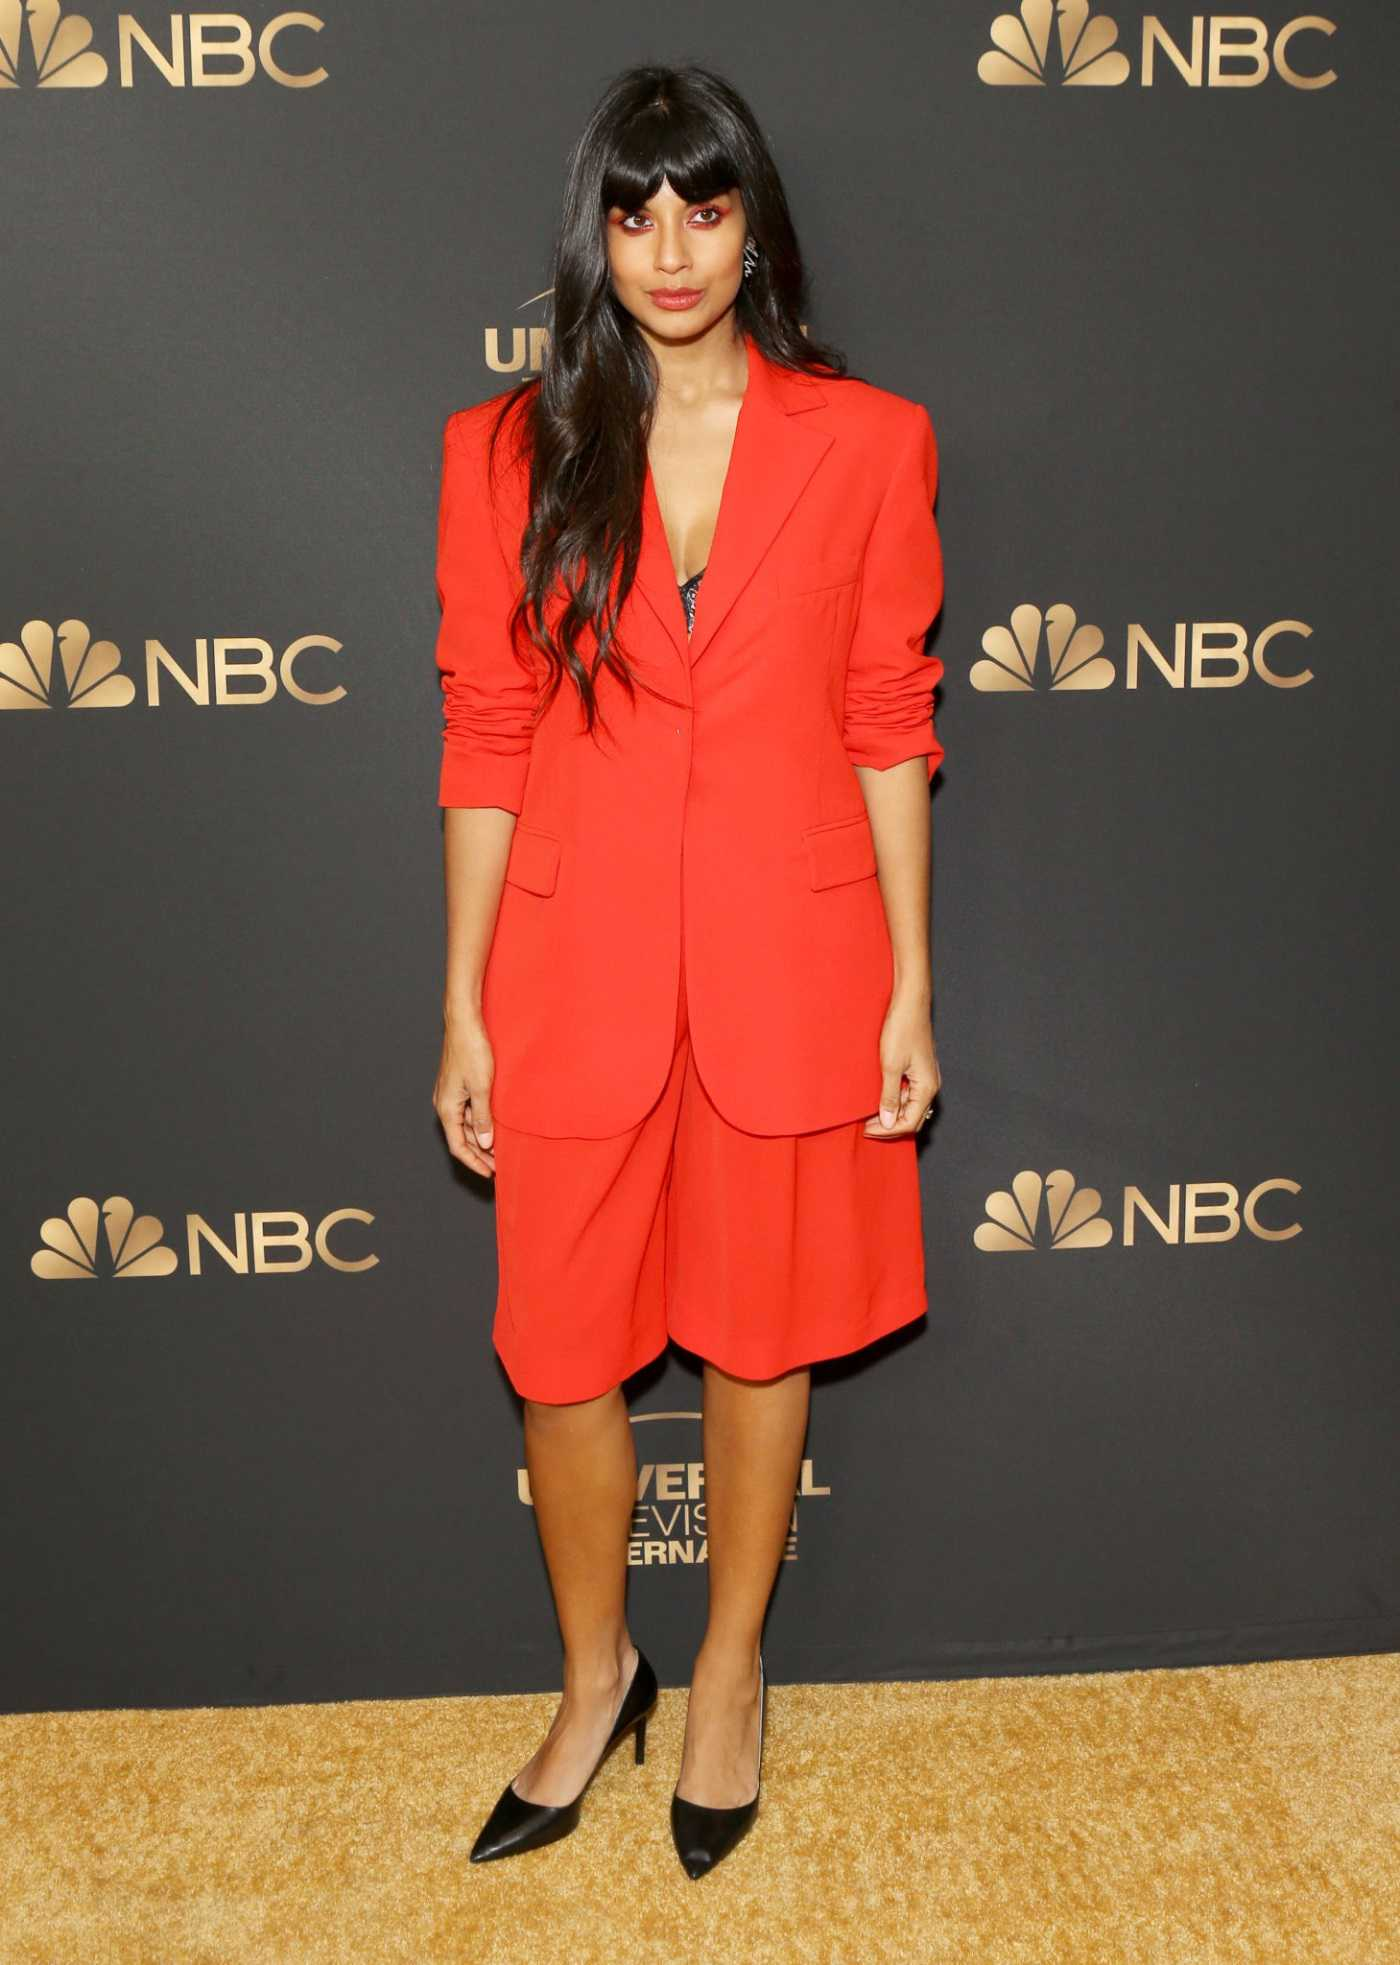 Jameela Jamil Attends the NBC and Universal EMMY Nominee Celebration at Tesse Restaurant in West Hollywood 08/13/2019